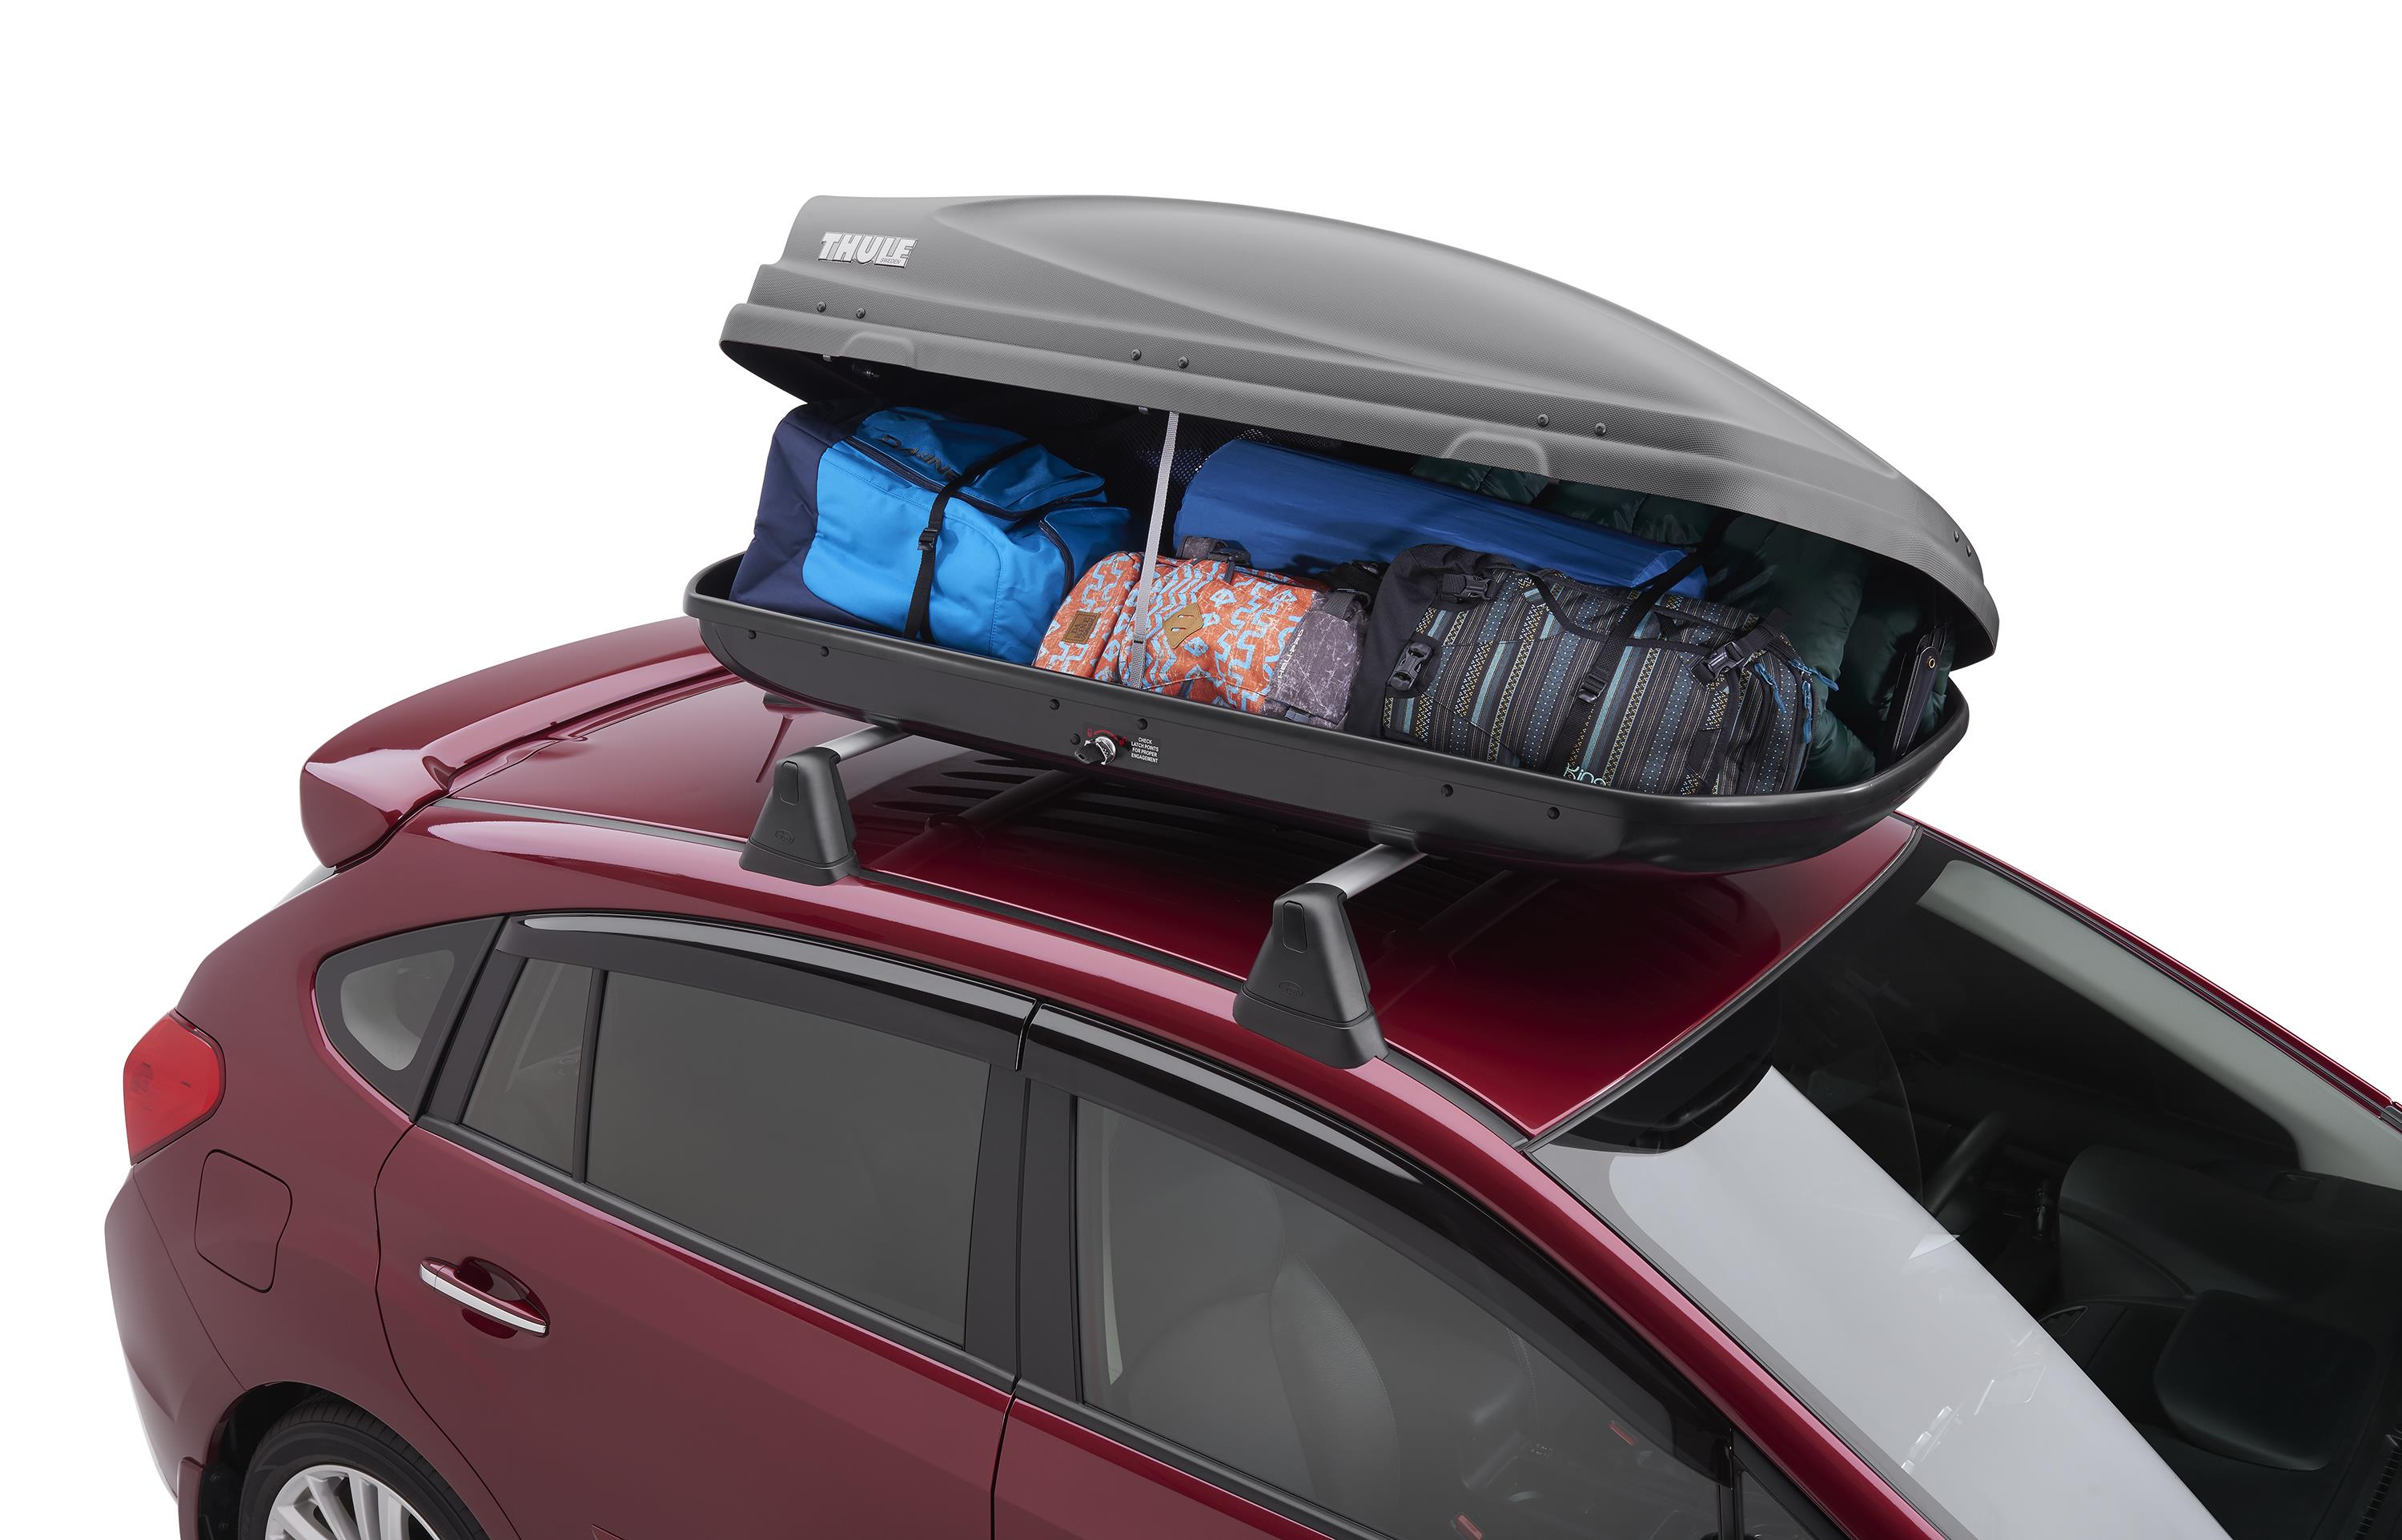 2017 subaru outback thule roof cargo carrier provides side soa567c020 subaru part. Black Bedroom Furniture Sets. Home Design Ideas